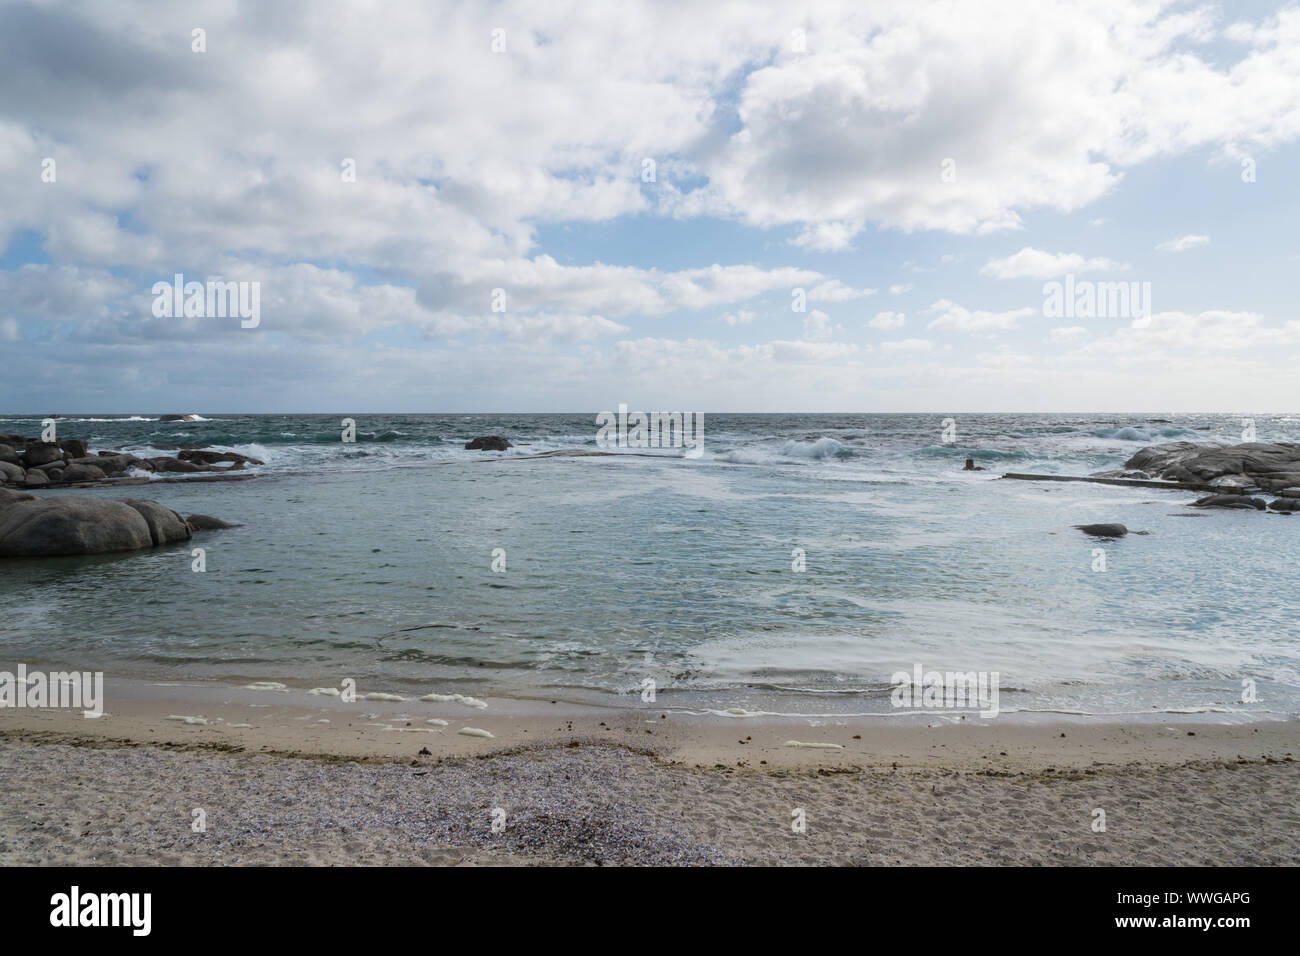 coastal tidal or tide pool at a white sandy beach on a cloudy Spring day in Camps Bay, Cape Town, South Africa with no people Stock Photo